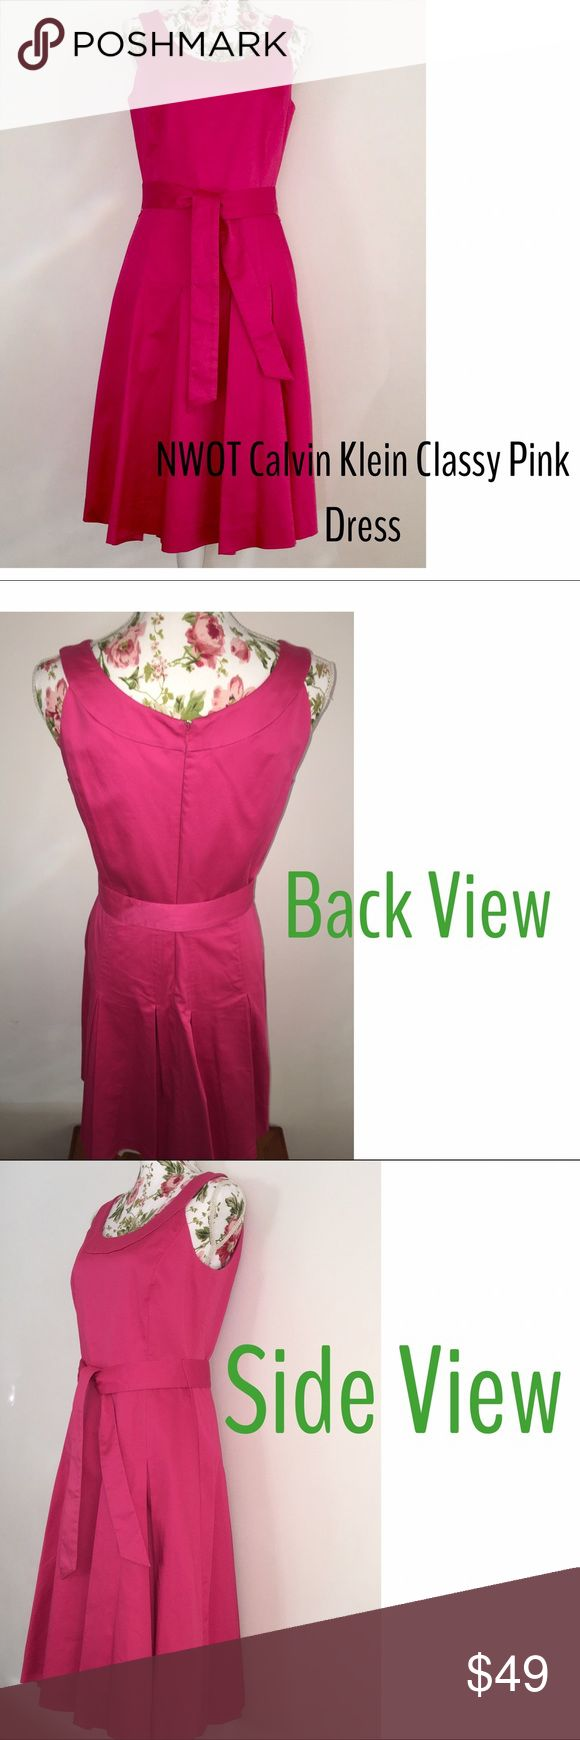 """🌺 NWOT Great quality Calvin Klein dress 🌺 See my Weekend Sale❤️ This is a high quality , perfect Calvin Klein Reddish/Pink dress . Has such lovely detail - large pleats all around bottom. Belt with thin loops (intact) to hold in place . Size 8- fits true to brand which runs a little small. I have tried this on and I think it  fits like women's 7/8. Medium weight cotton that is comfortable and so NEAT ! Measures 40"""" long, 12"""" shoulder (across back) This dress is incredible! Clean , smoke…"""